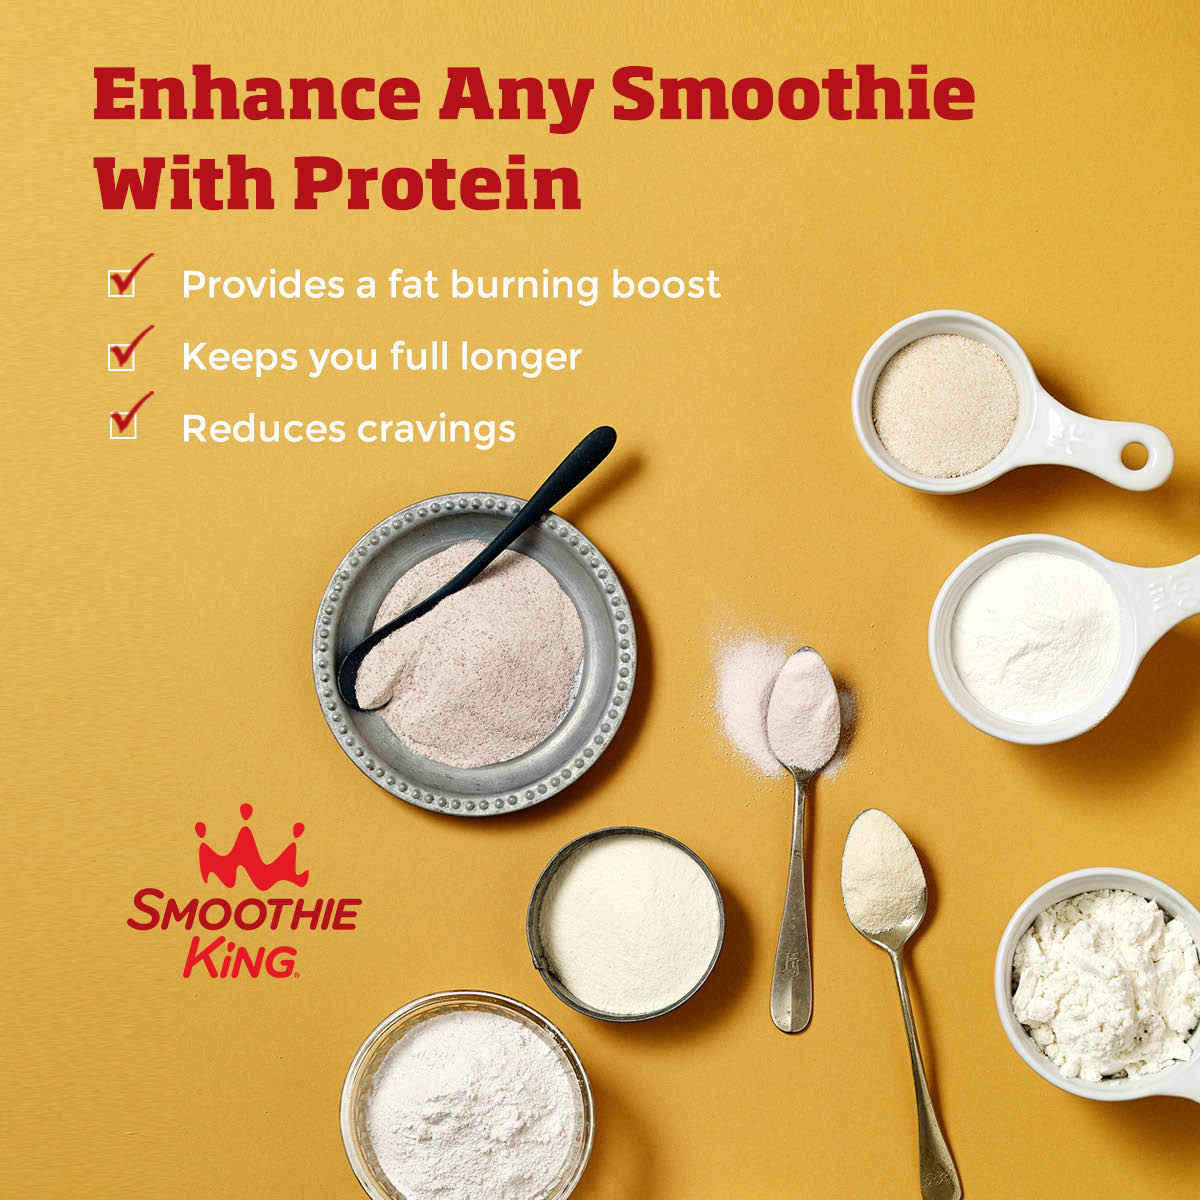 Smoothie King located in Shawnee , KS. When the weather turns cold, your purpose may shift to our Wellness Blends to keep you healthy through the winter months ahead... Come in and try one of our